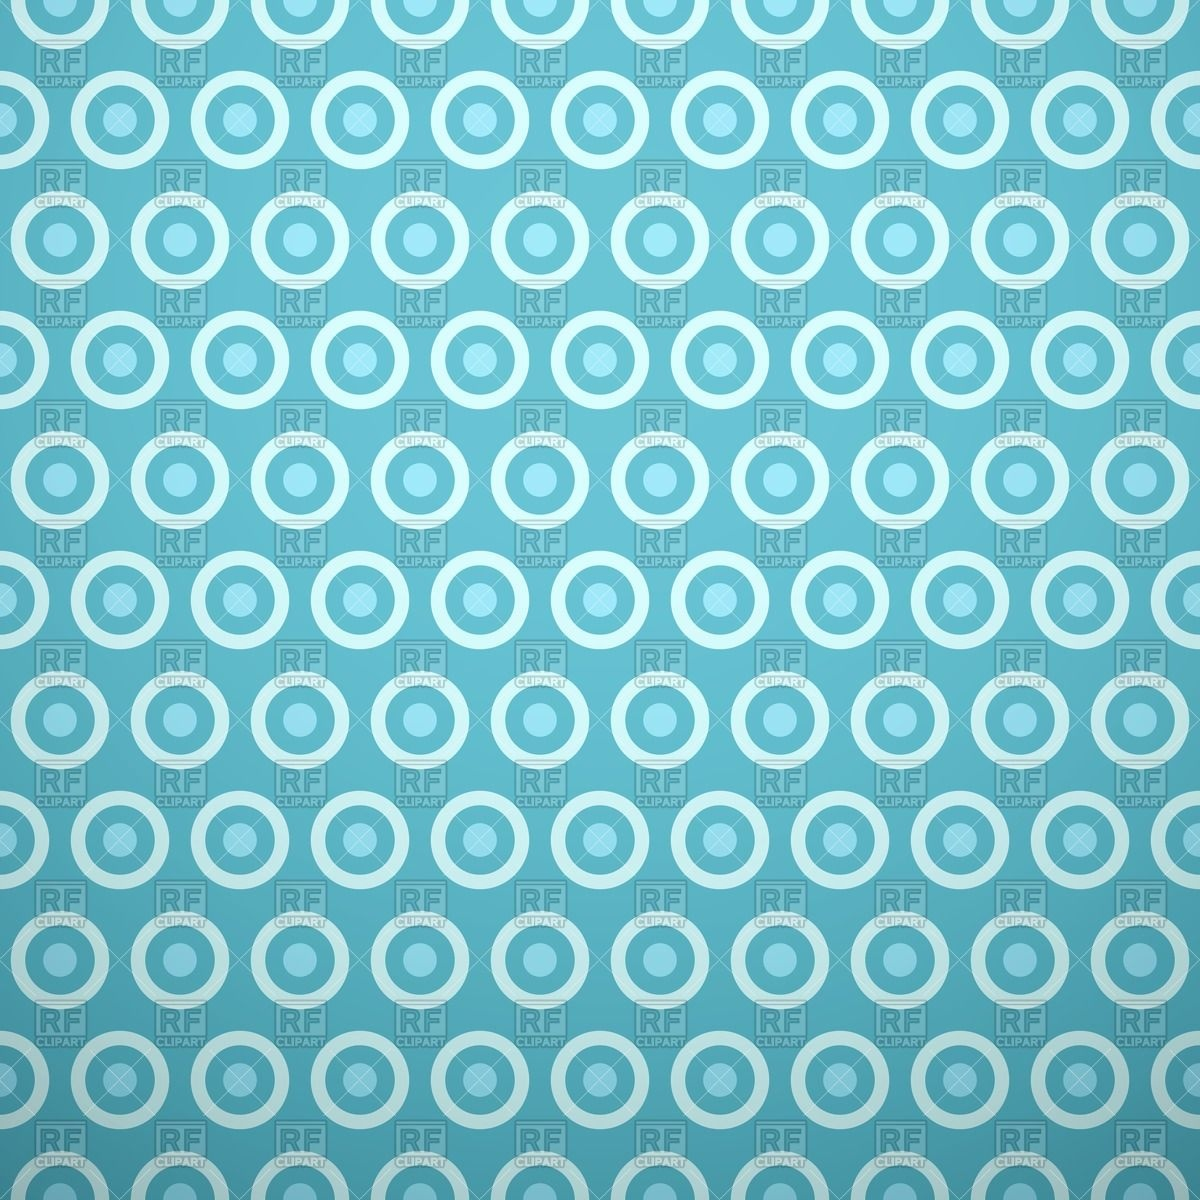 Blue Polka Dot And Circle Shapes Background Backgrounds Textures